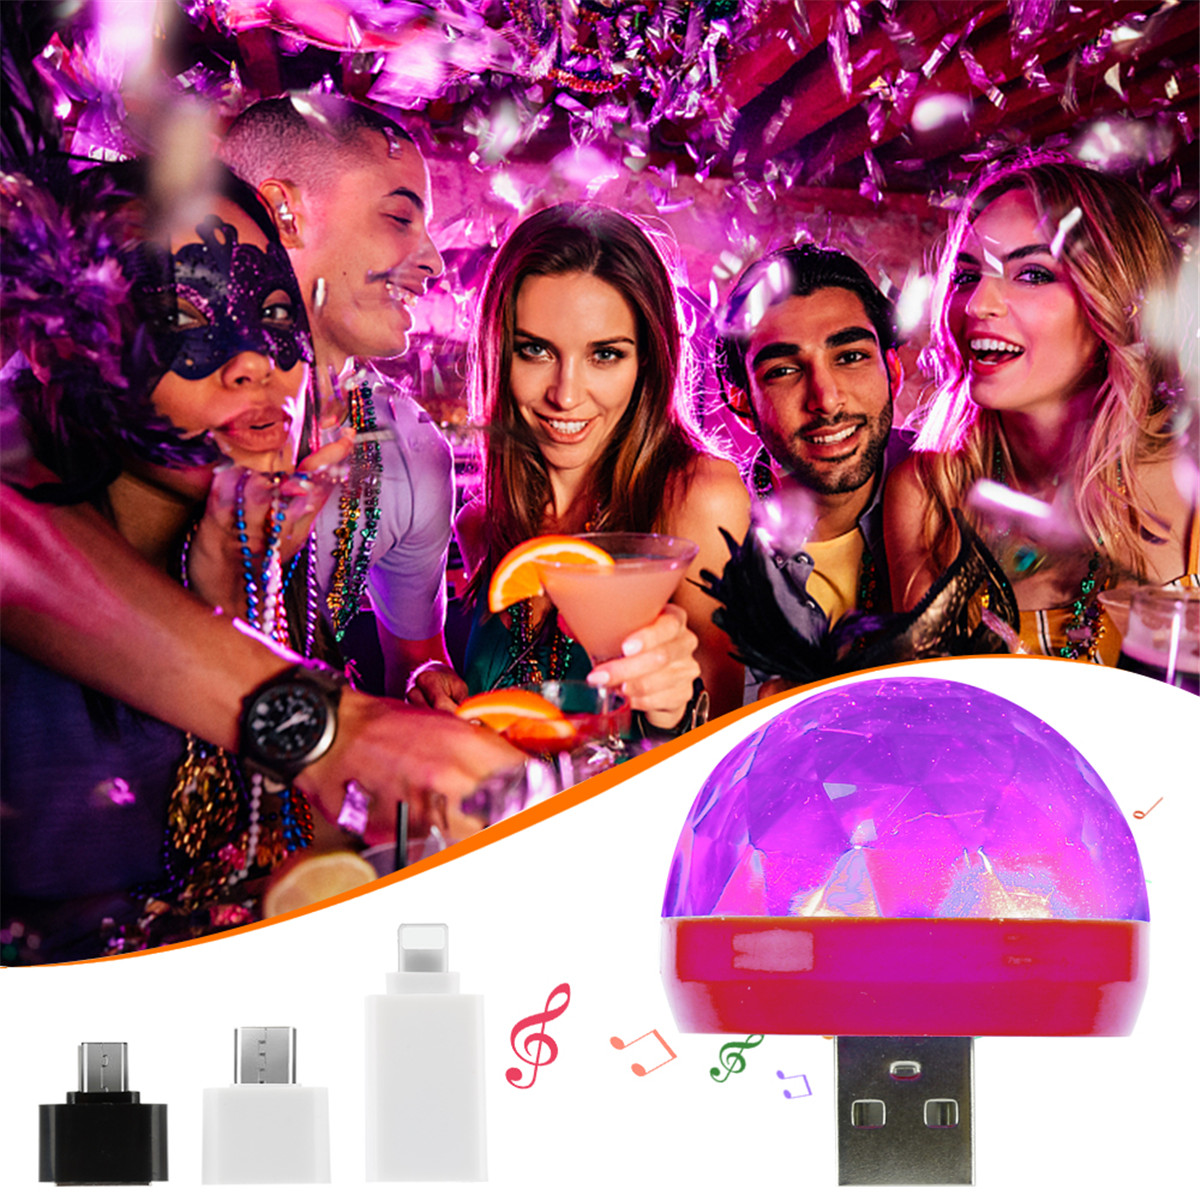 USB Mini Disco Lights Portable Home Party Light USB Powered Led Stage Party Ball DJ Lighting Karaoke Party Led Christmas Decor